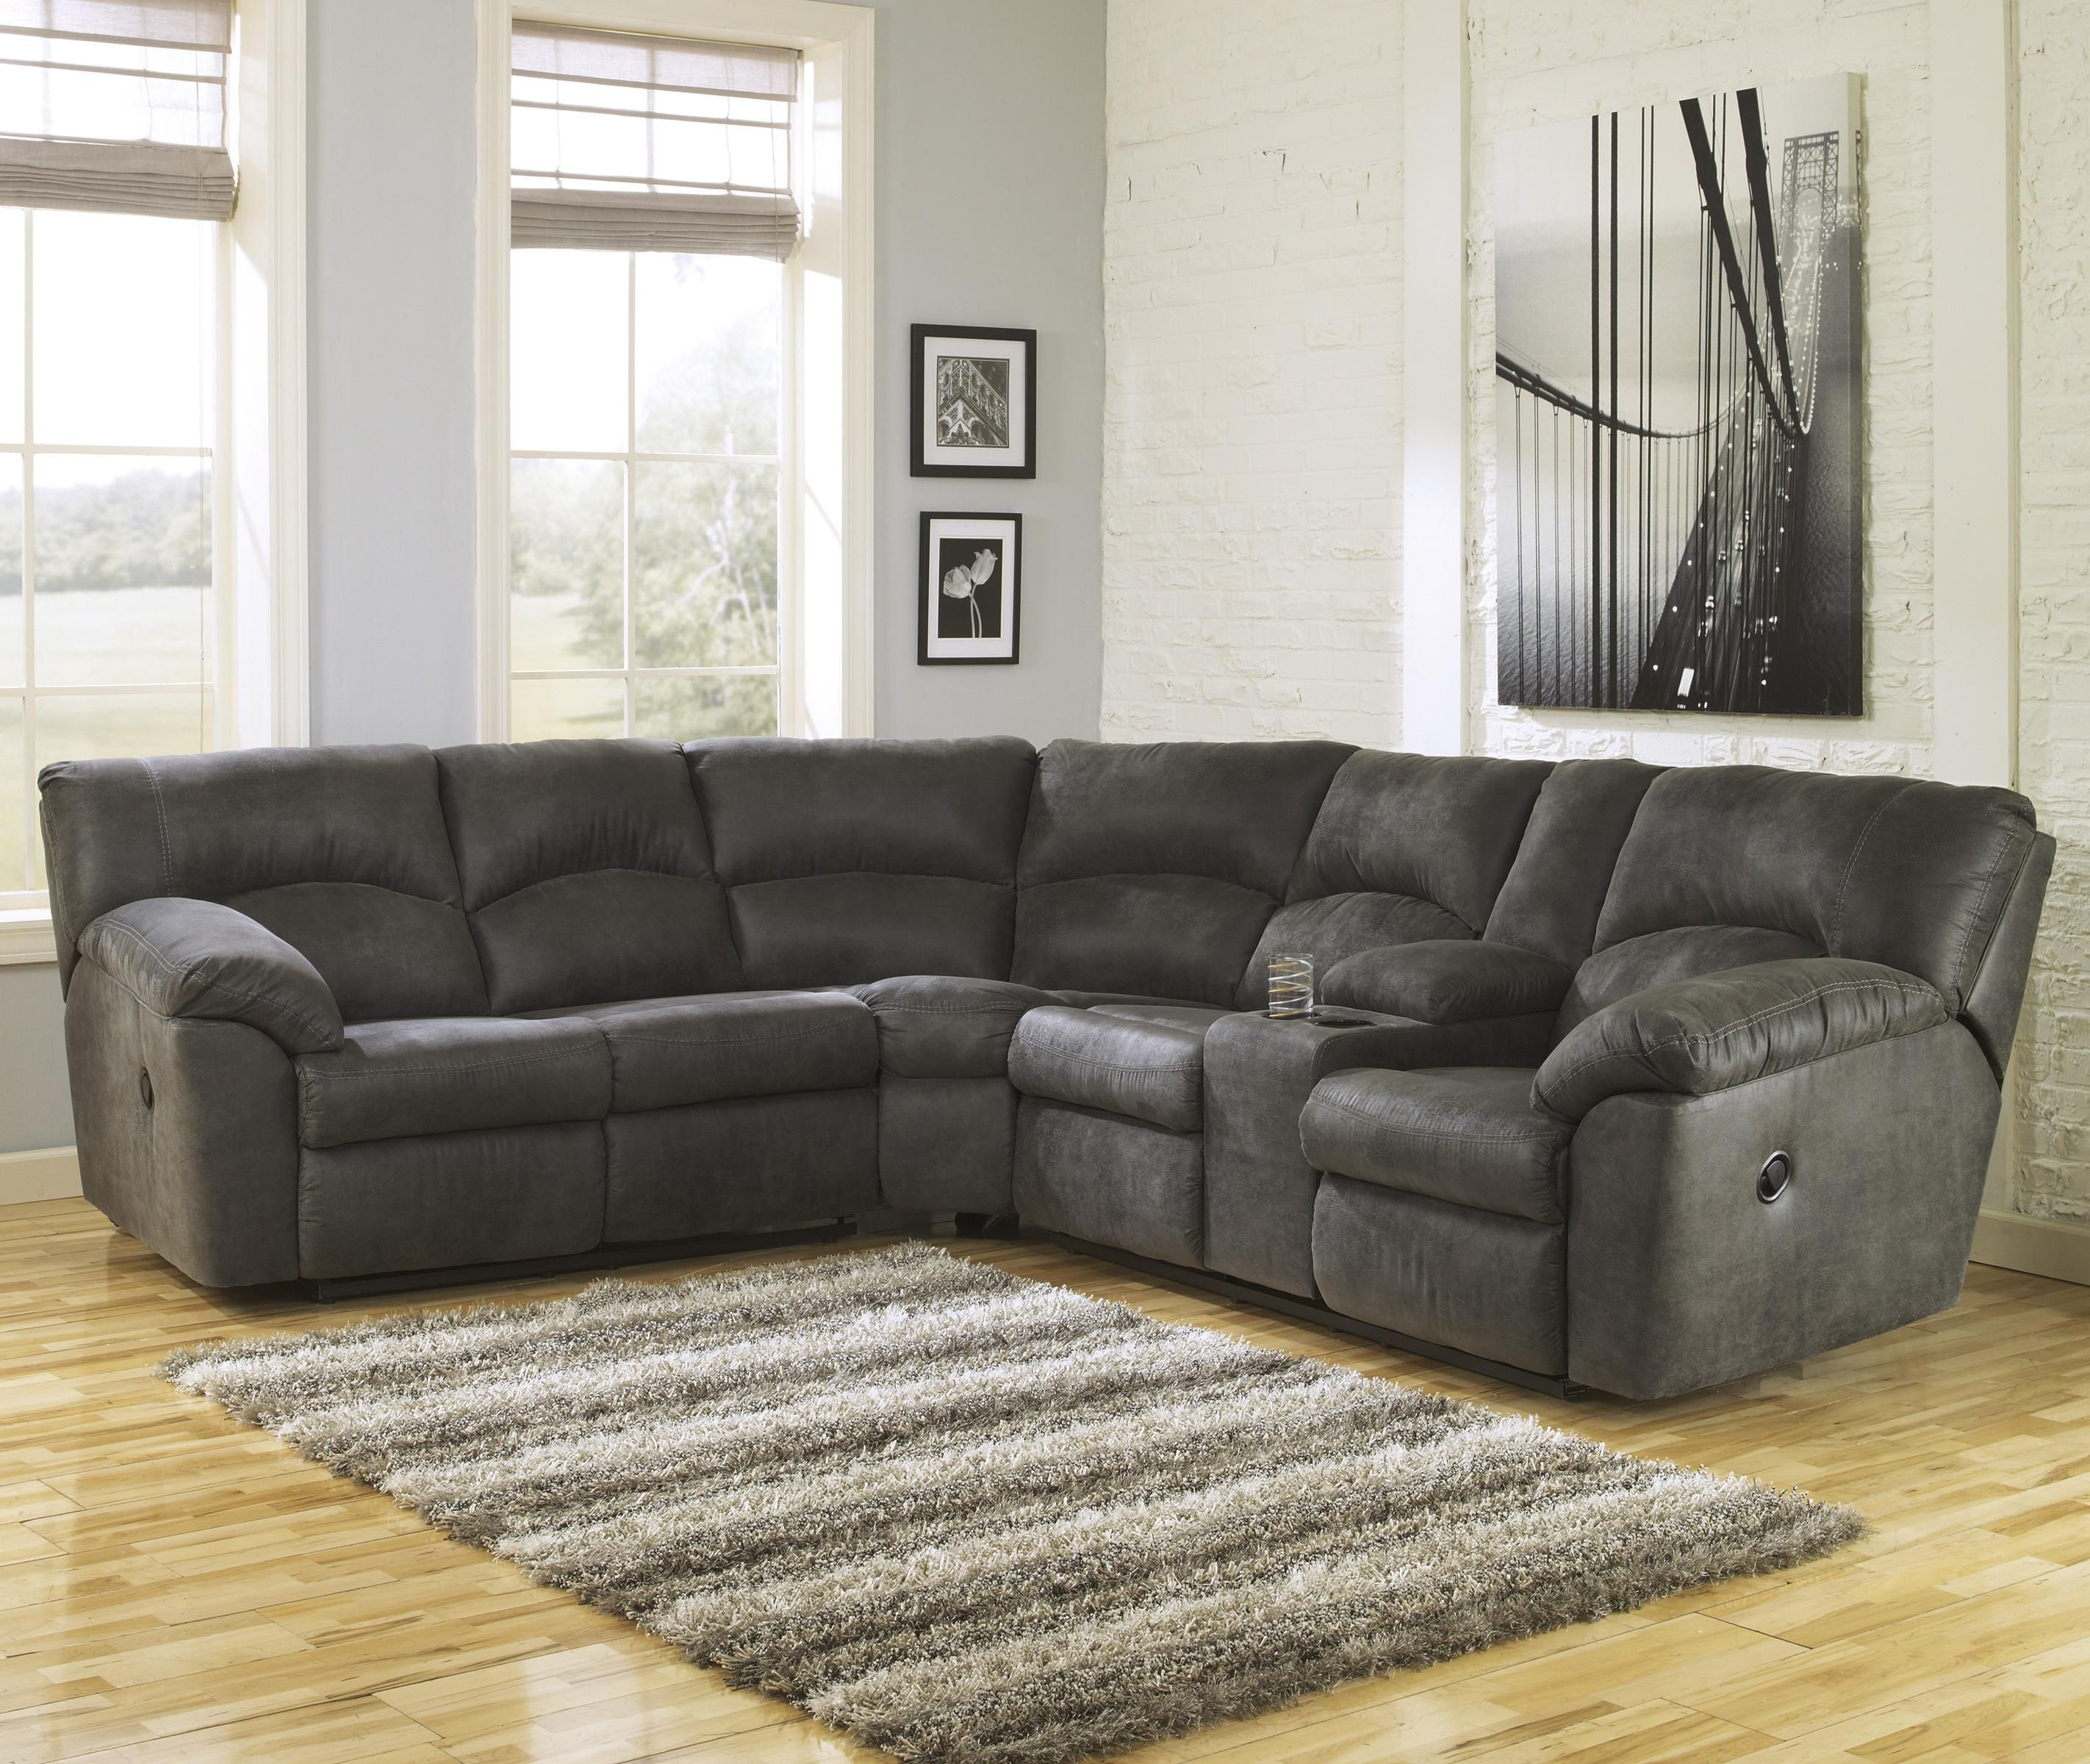 Living room furniture cordoba 2 pc sectional - Tambo Pewter 2 Piece Reclining Corner Sectional With Center Console By Signature Design By Ashley